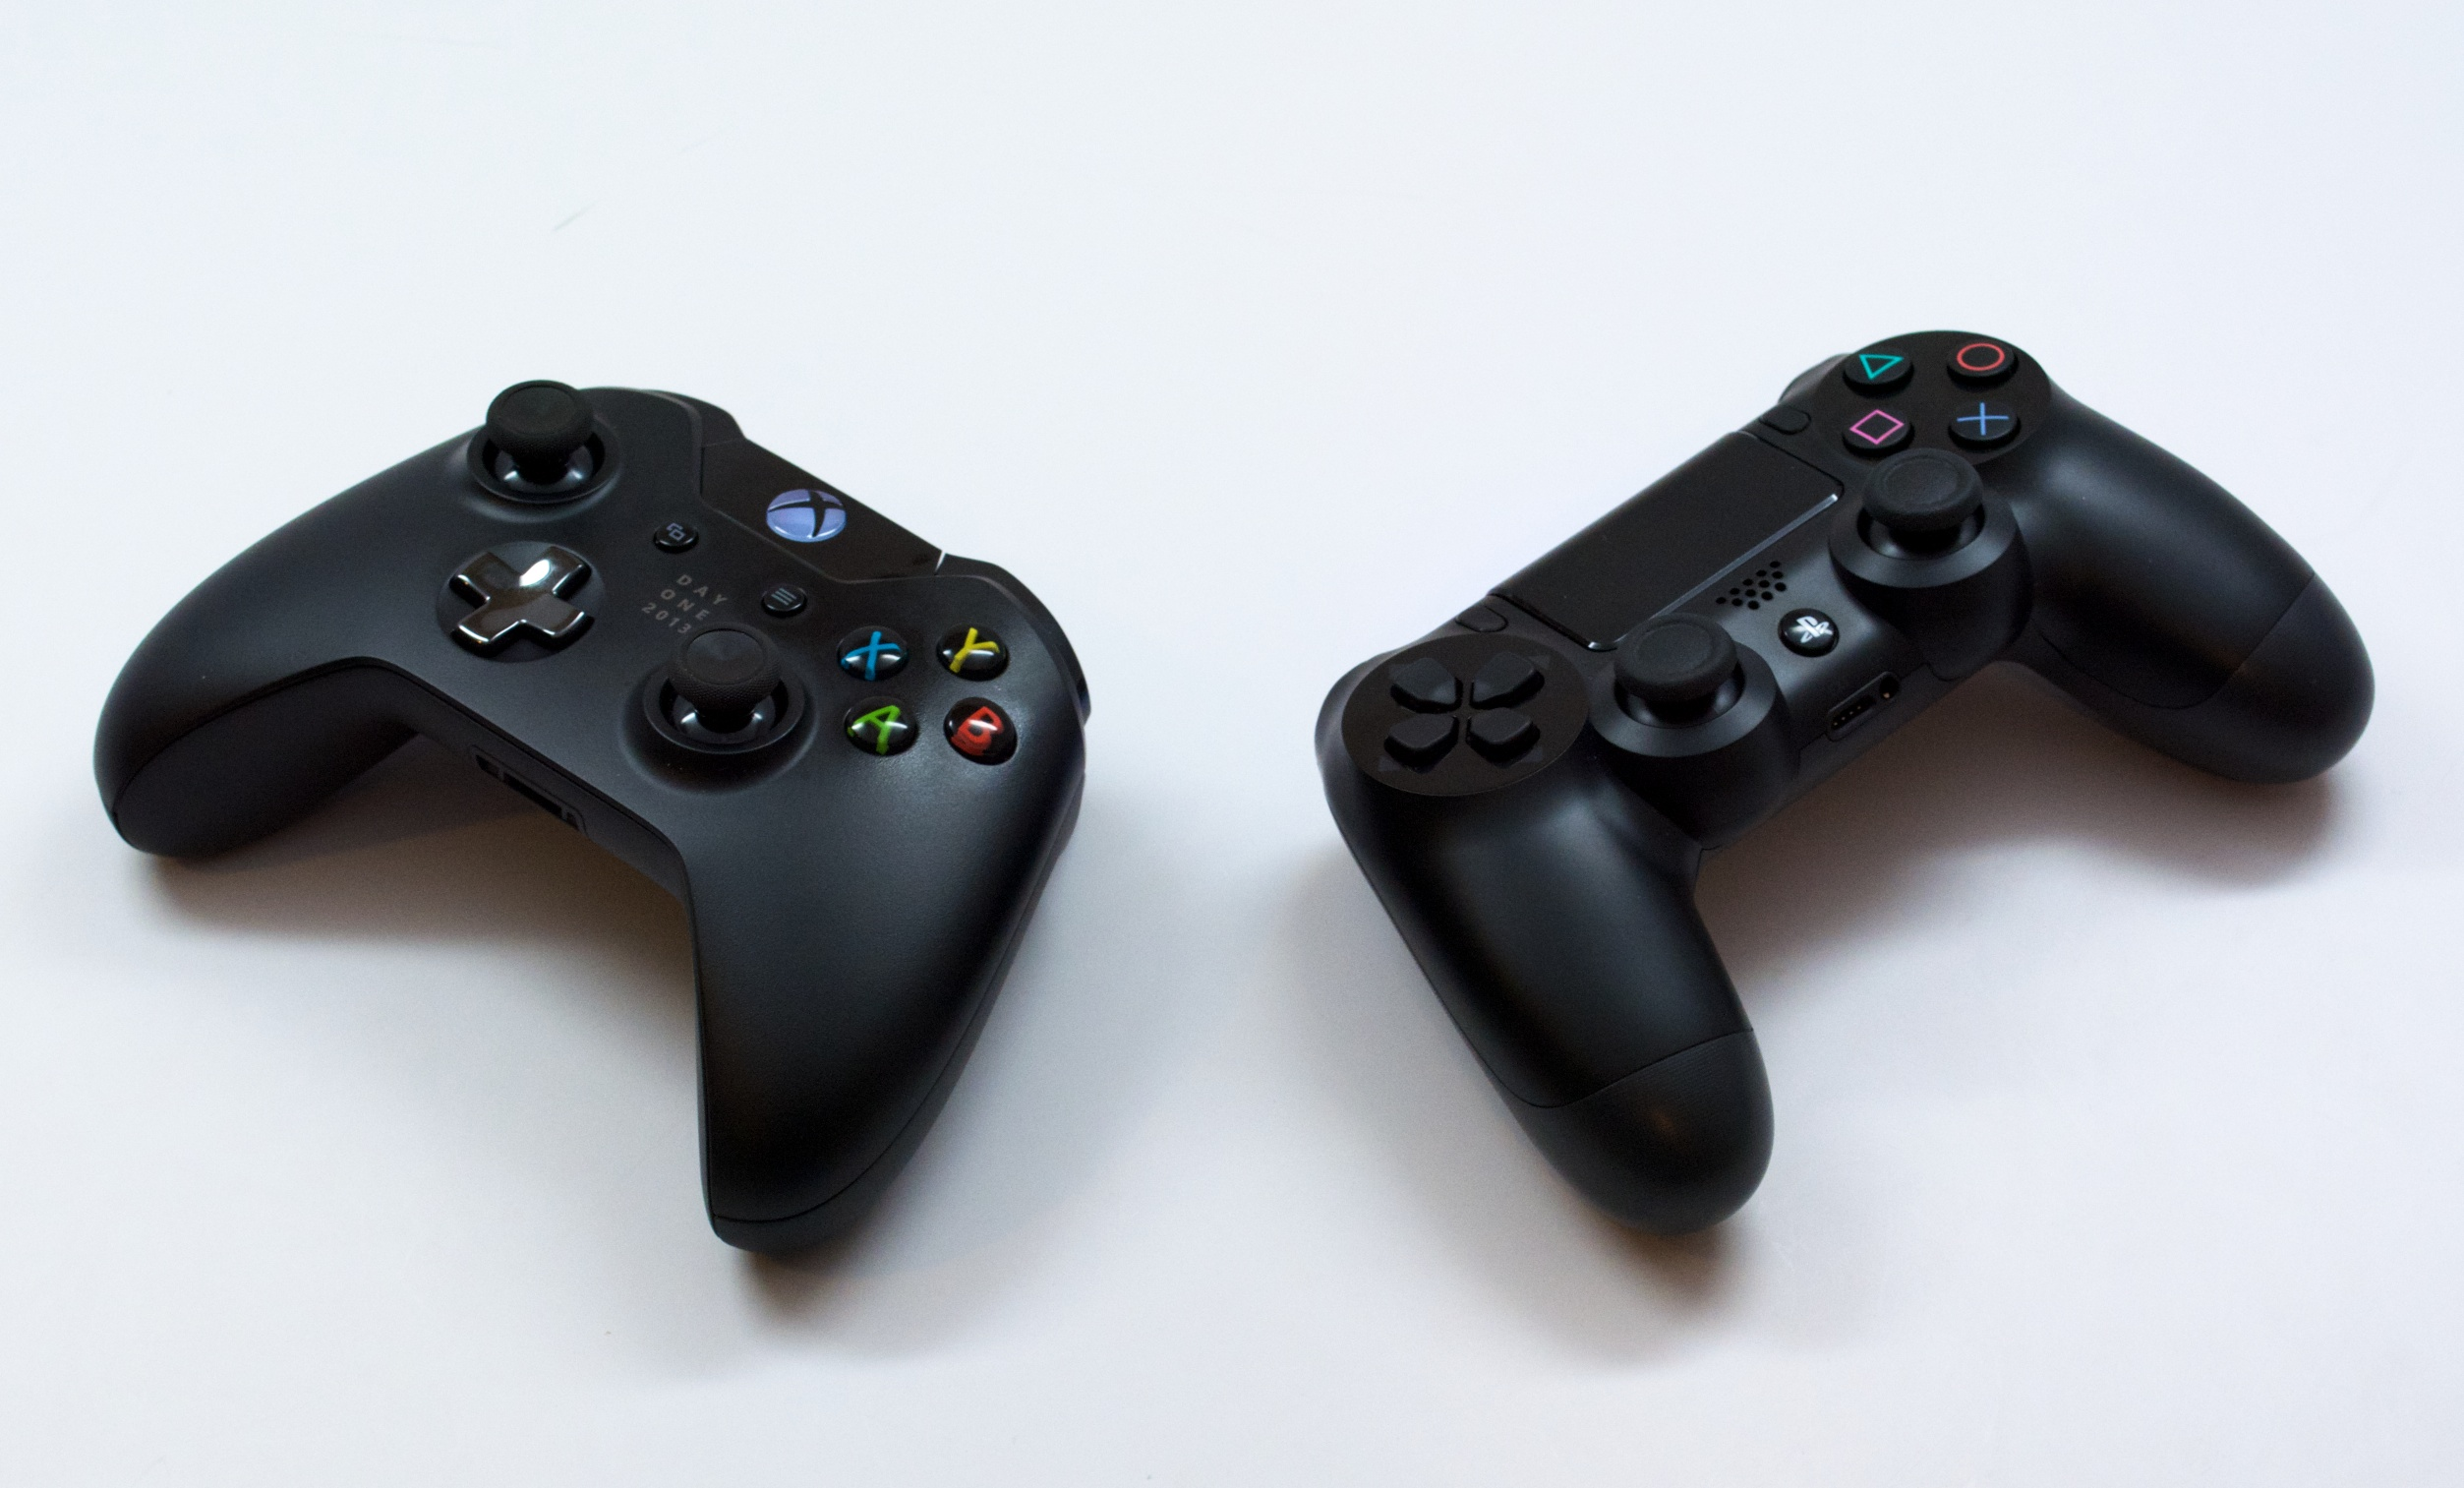 Microsoft will allow cross platform play with PS4 and PC players